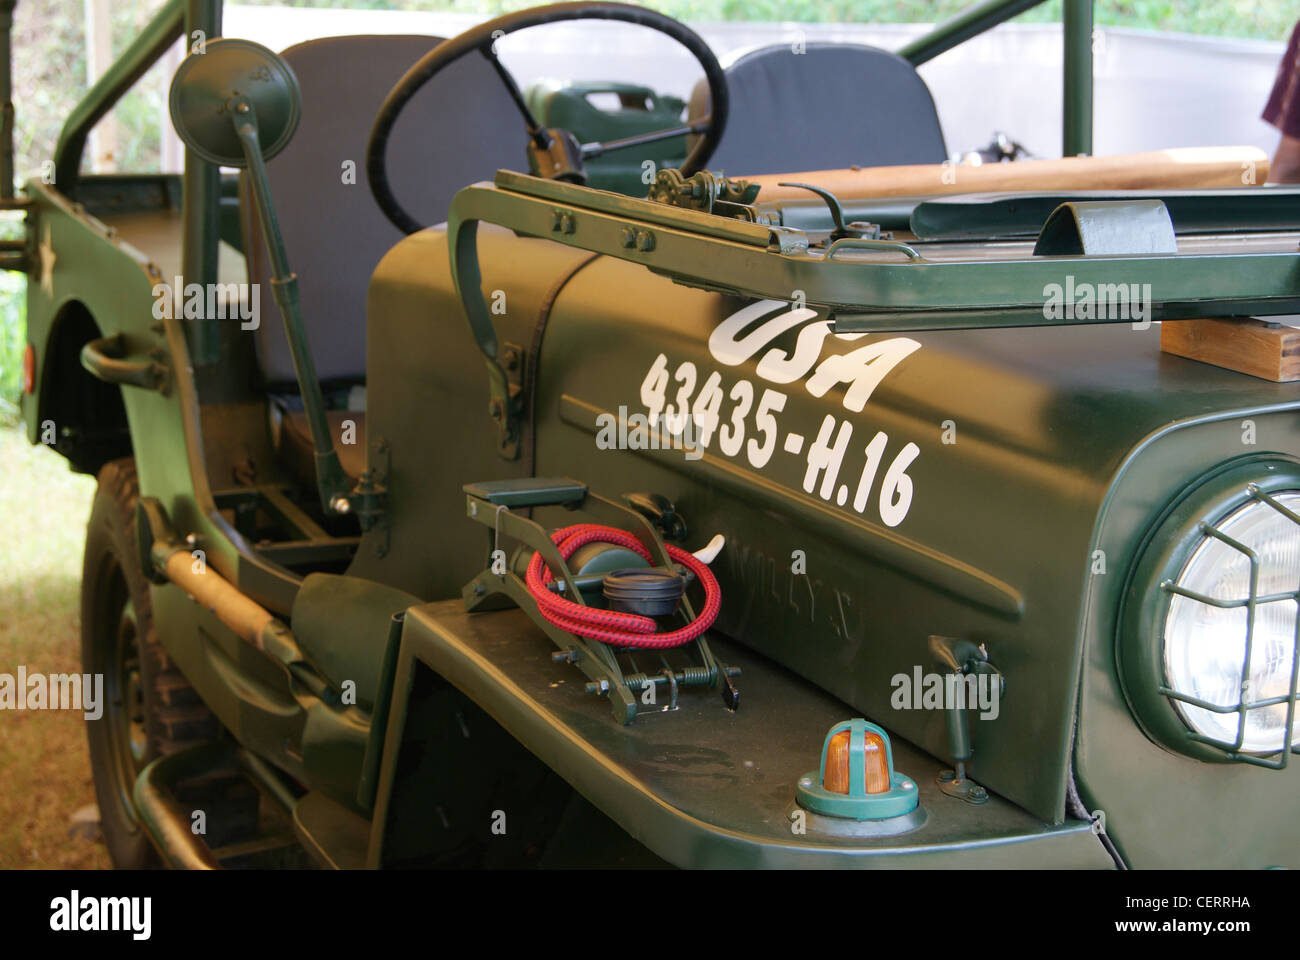 Willys MB USA Military Jeep ( 43435 - H.16) - Stock Image